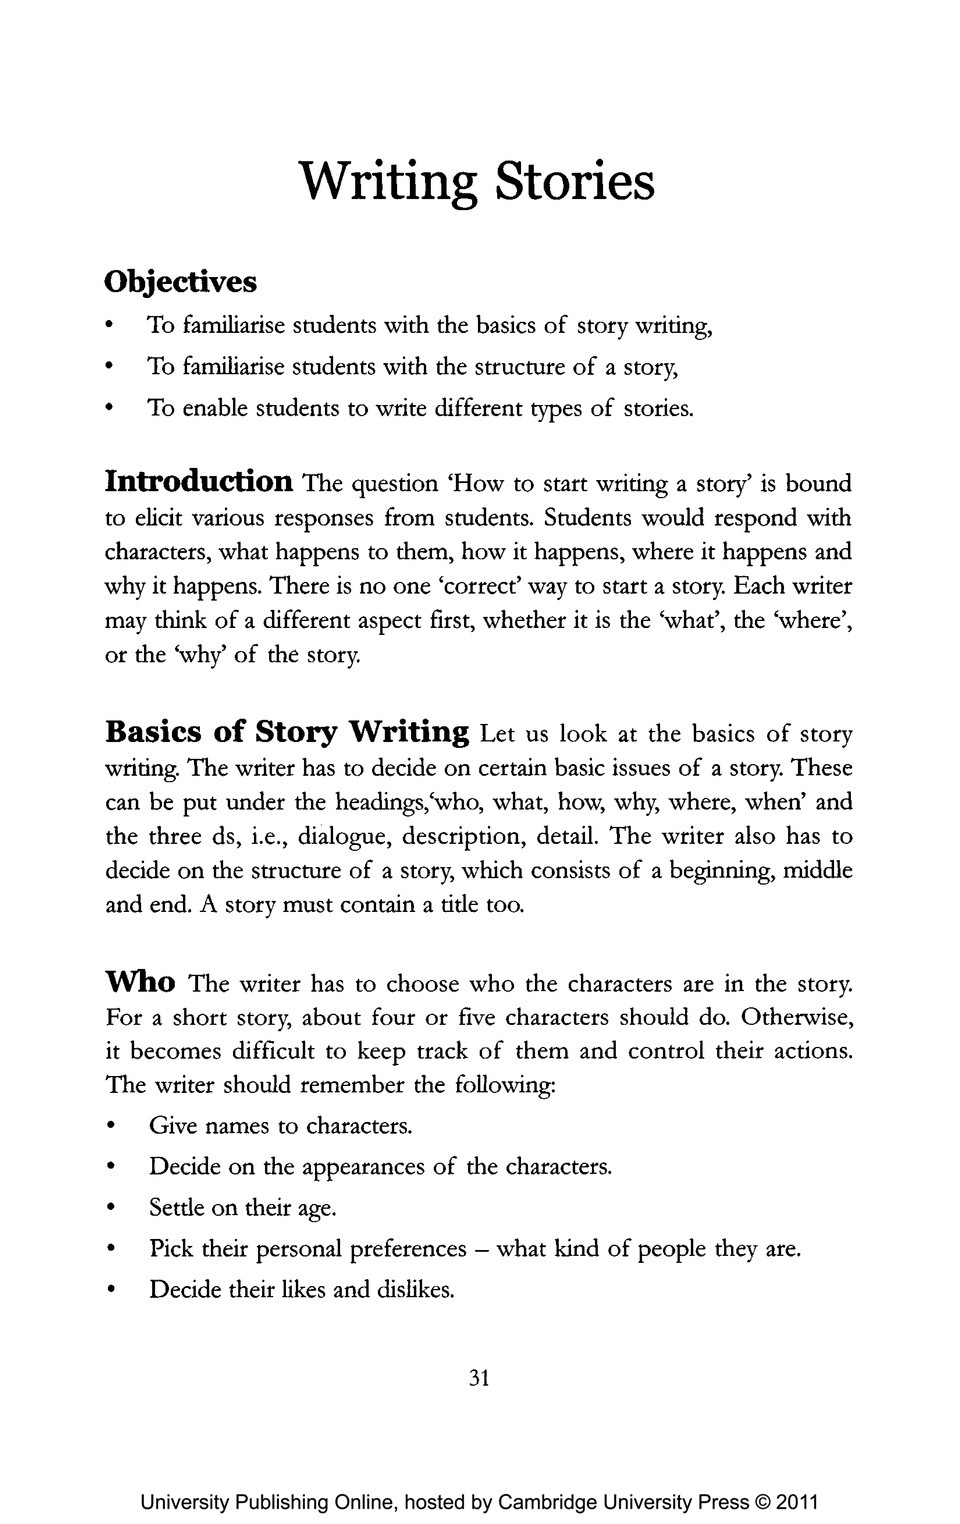 015 Short Stories In Essays Essay Example Dialogue Write Story How To Sample Research Paper 9788175968714c2 Abstrac Comparison An Introduction For Title Good Conclusion The Of Impressive Fiction Analysis Examples Format 960